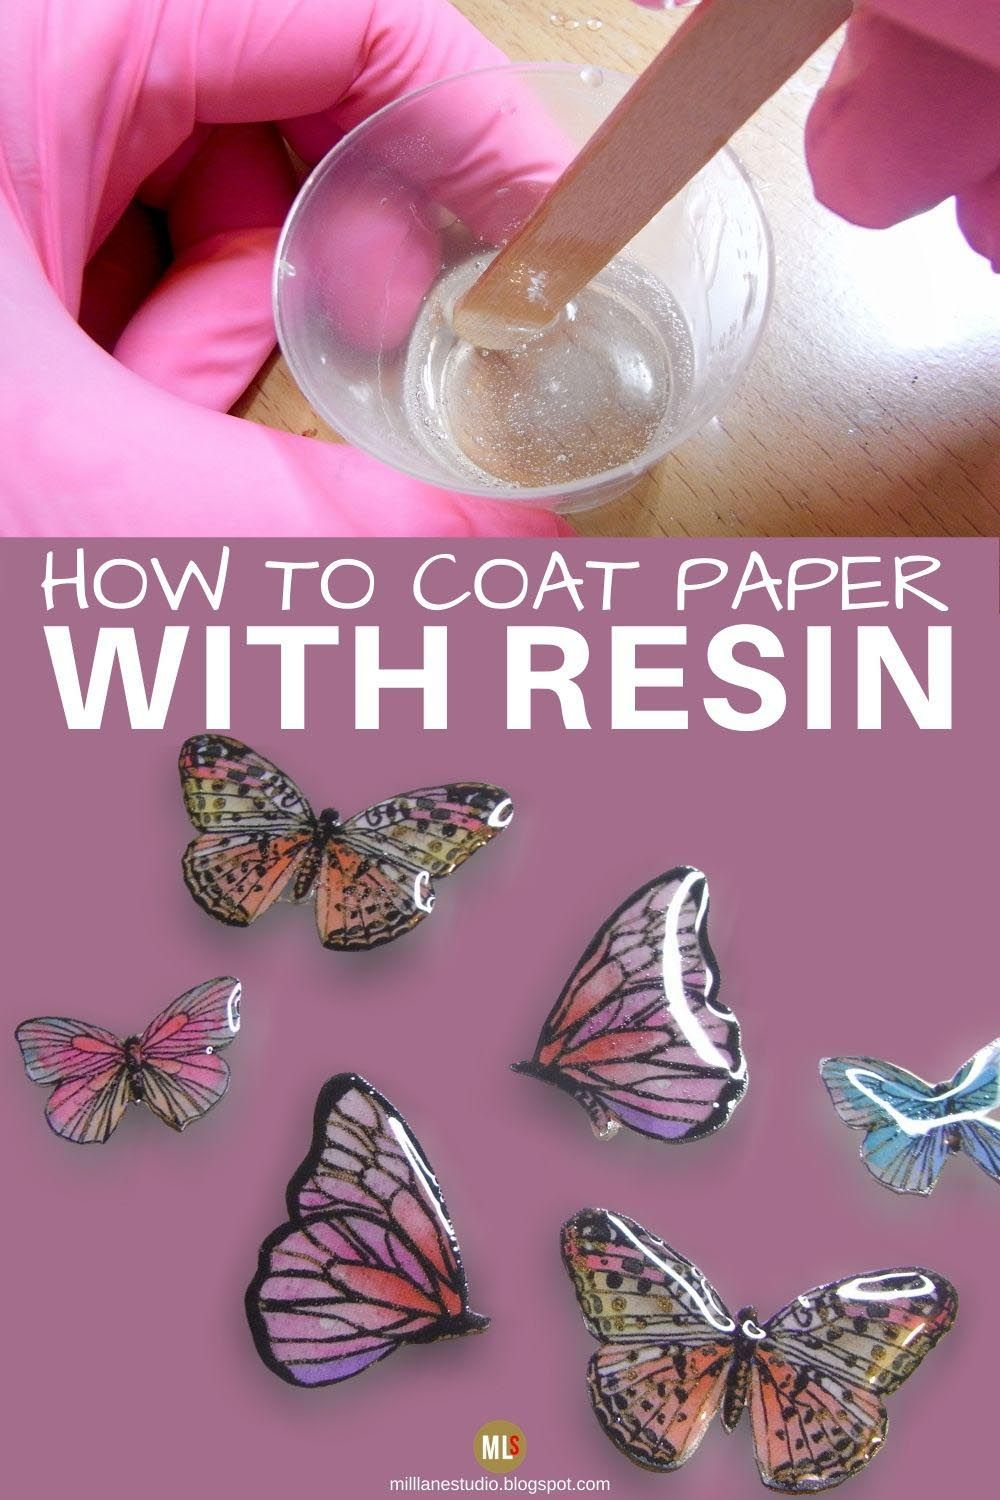 Photo of The Trick to Coating Paper with Resin